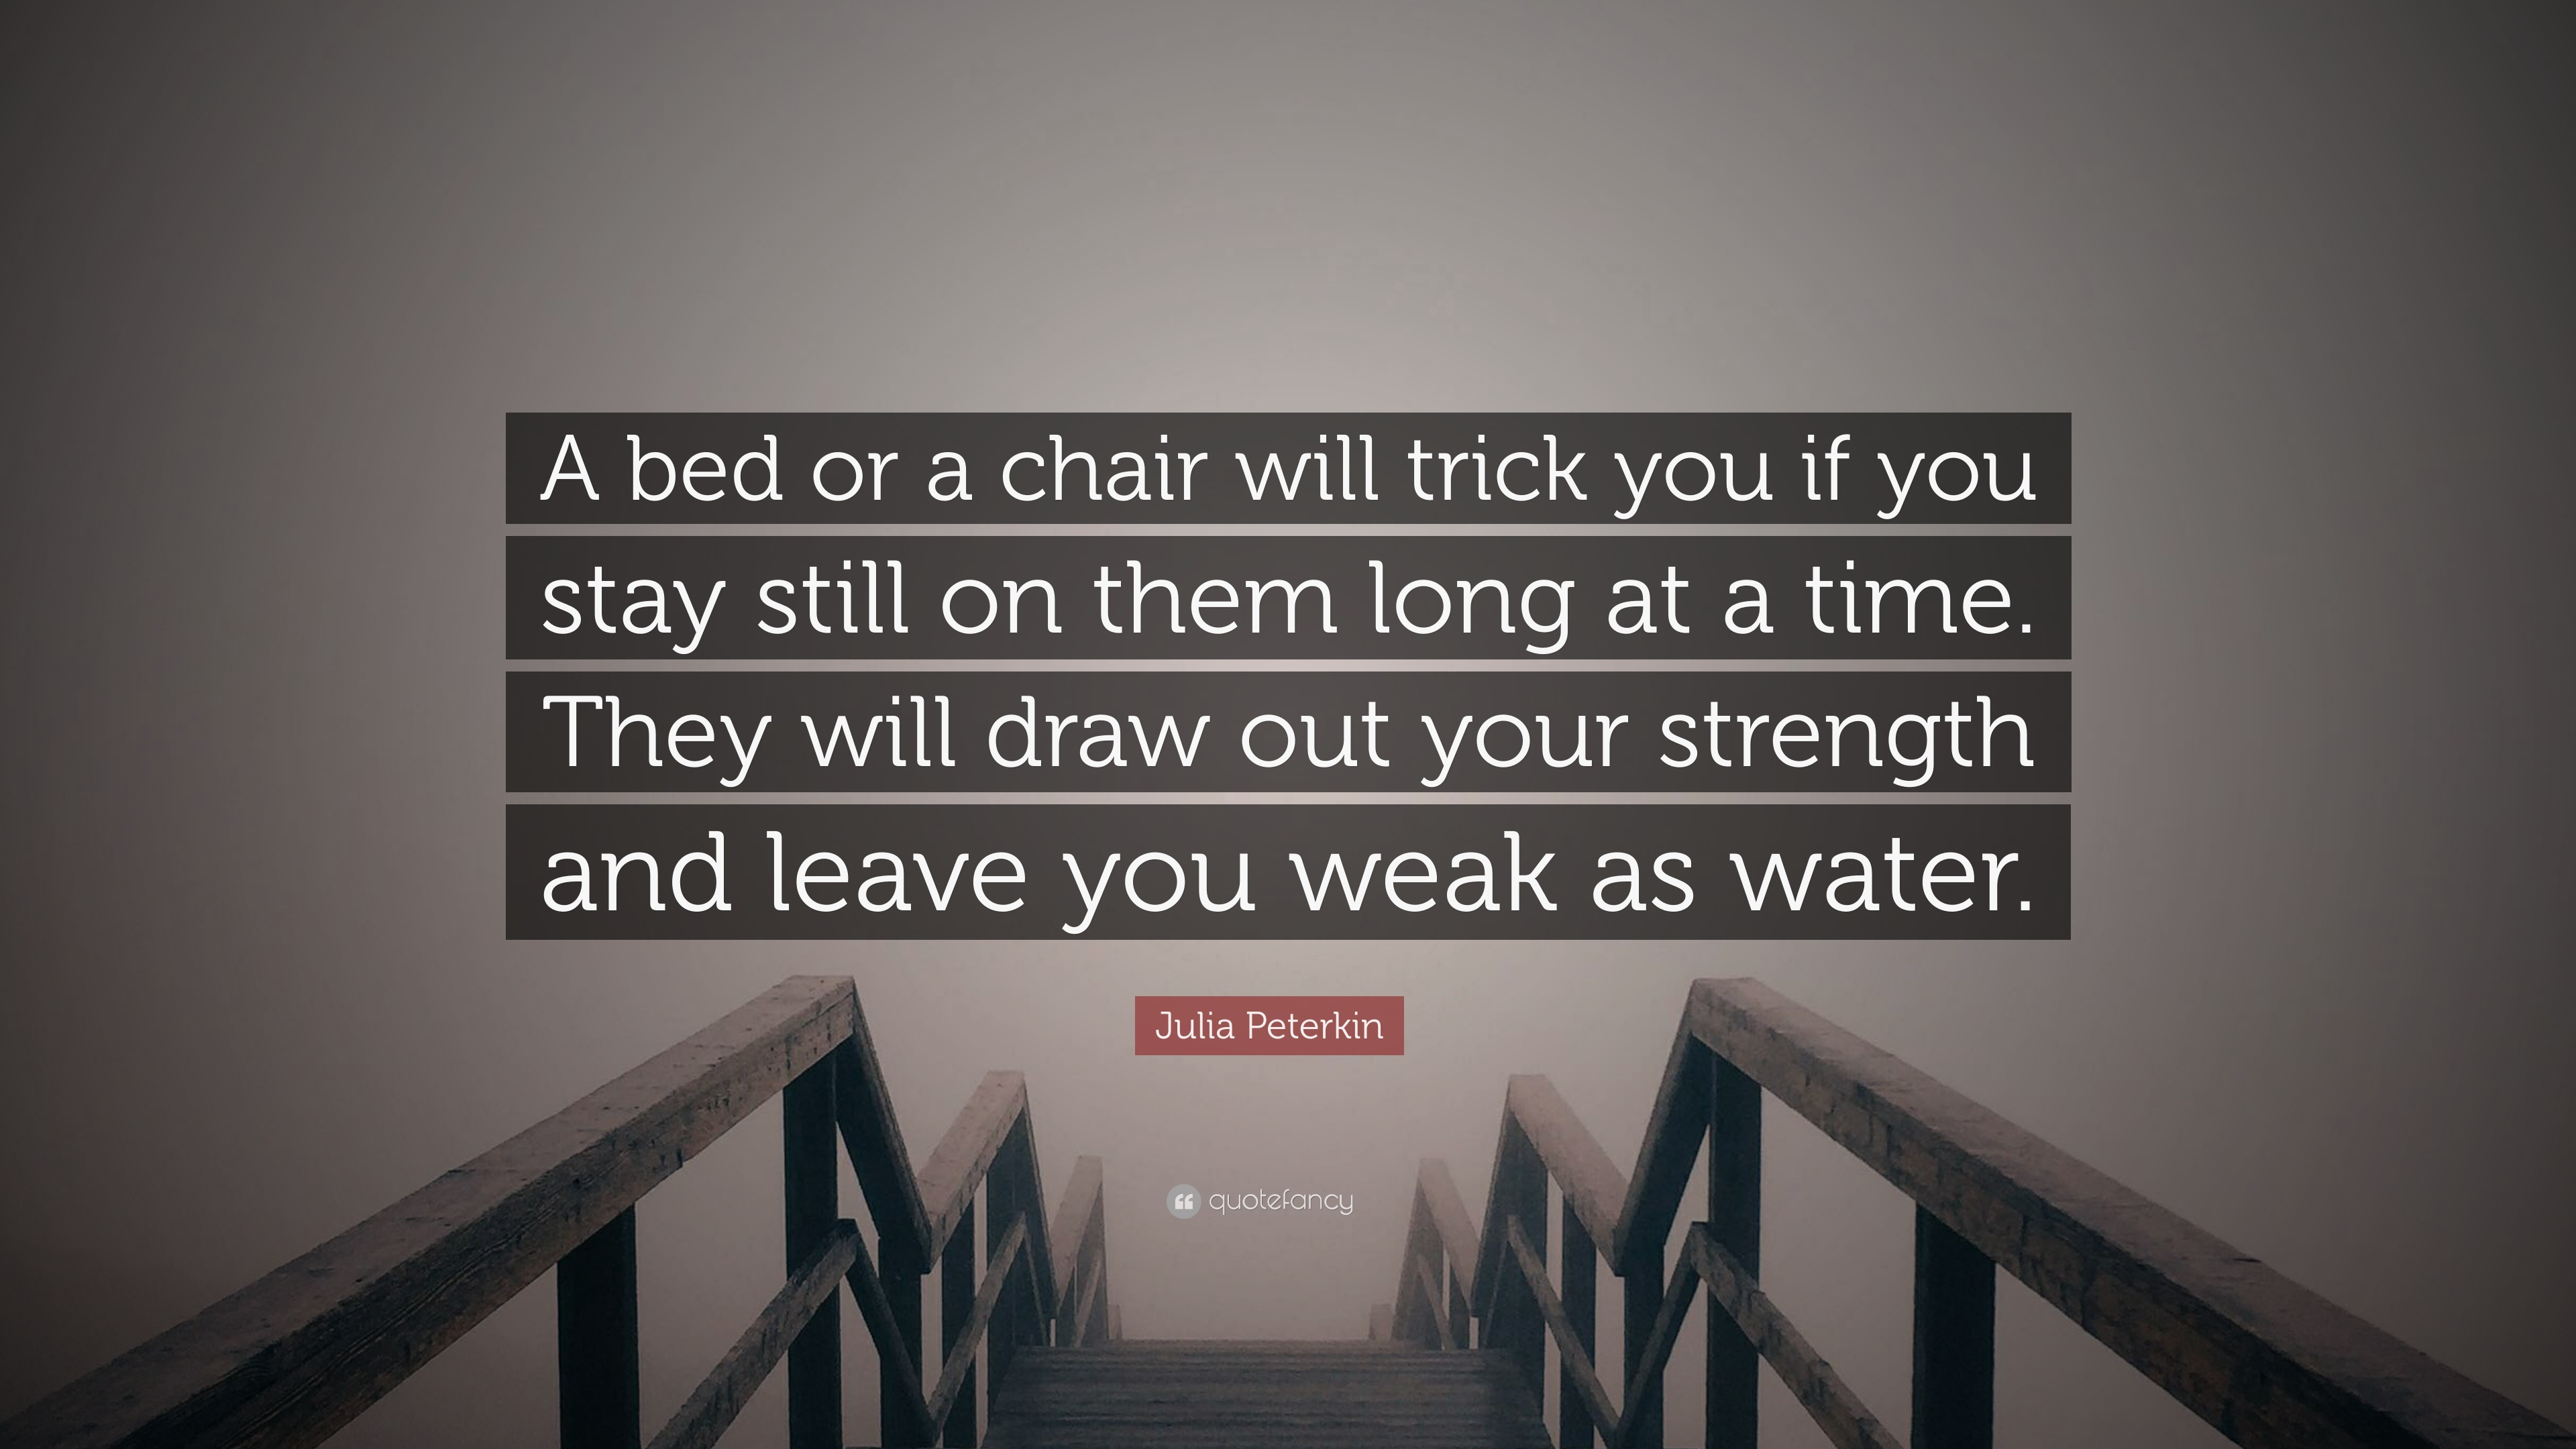 julia peterkin quote a bed or a chair will trick you if you stay